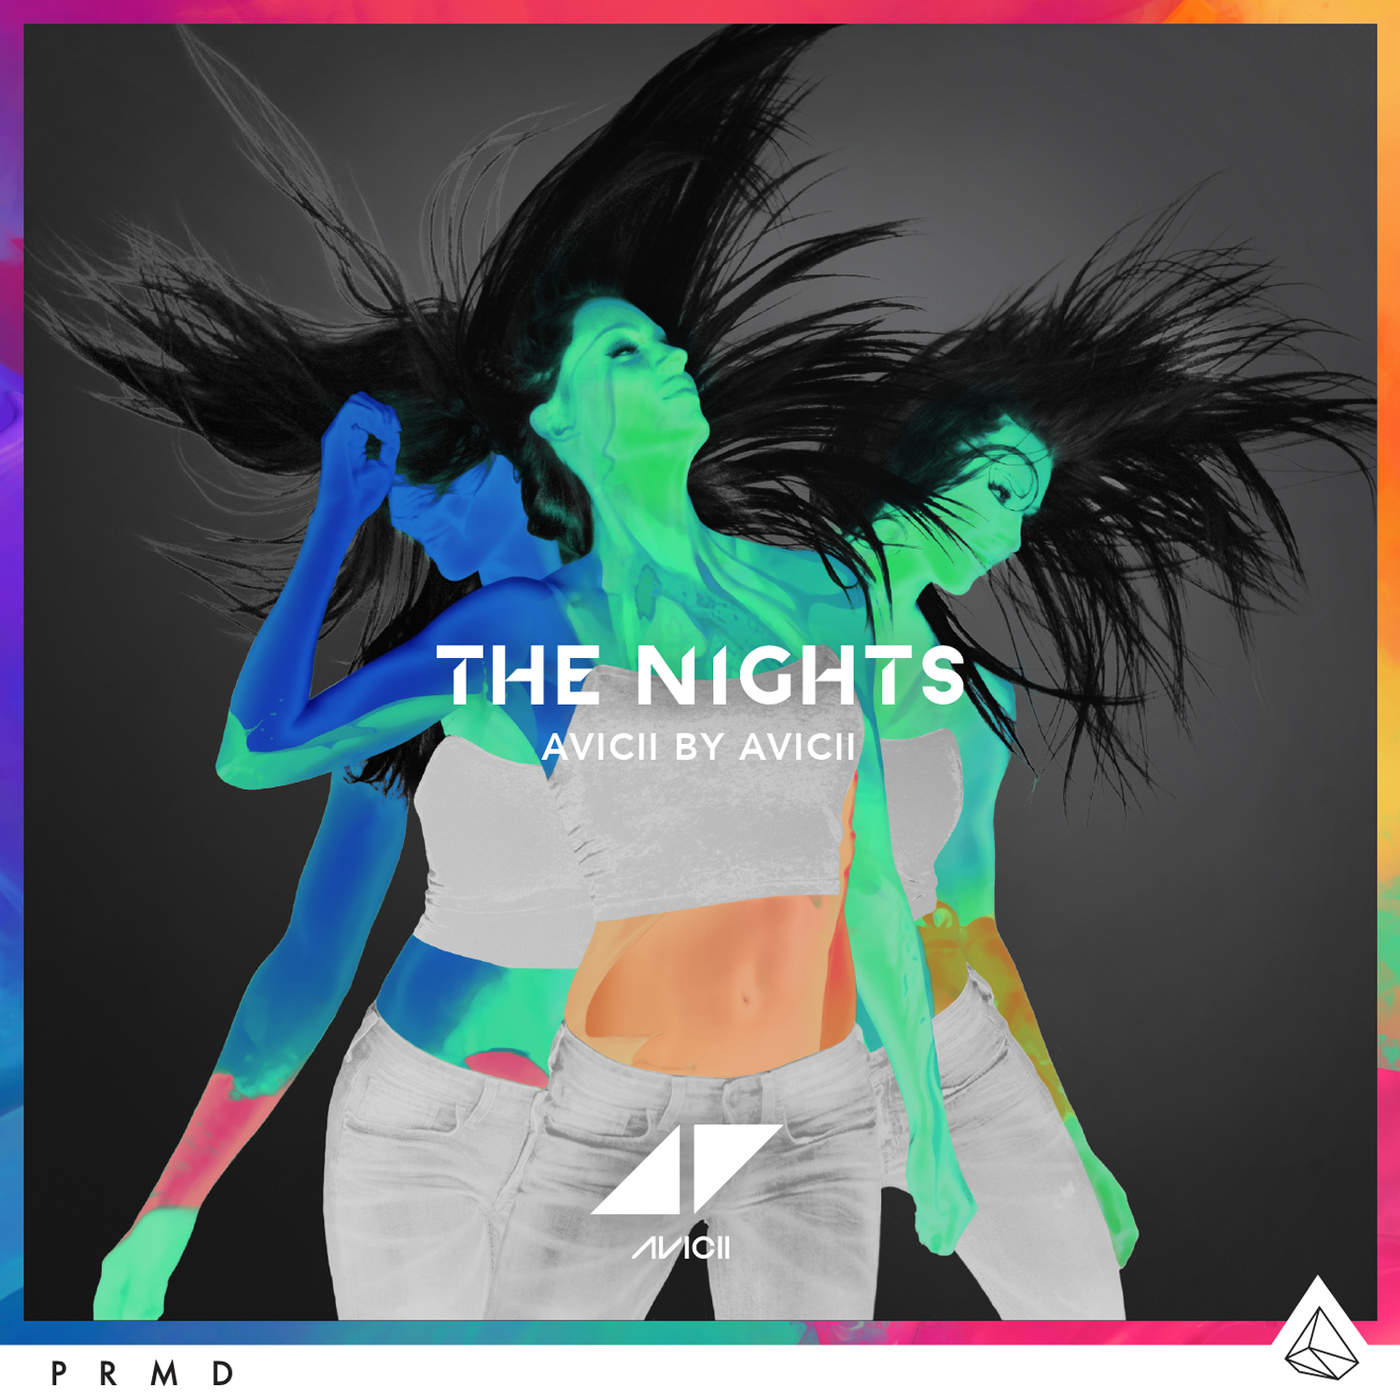 Avicii – The Nights (Avicii By Avicii) – Single (2014) [iTunes Plus AAC M4A]